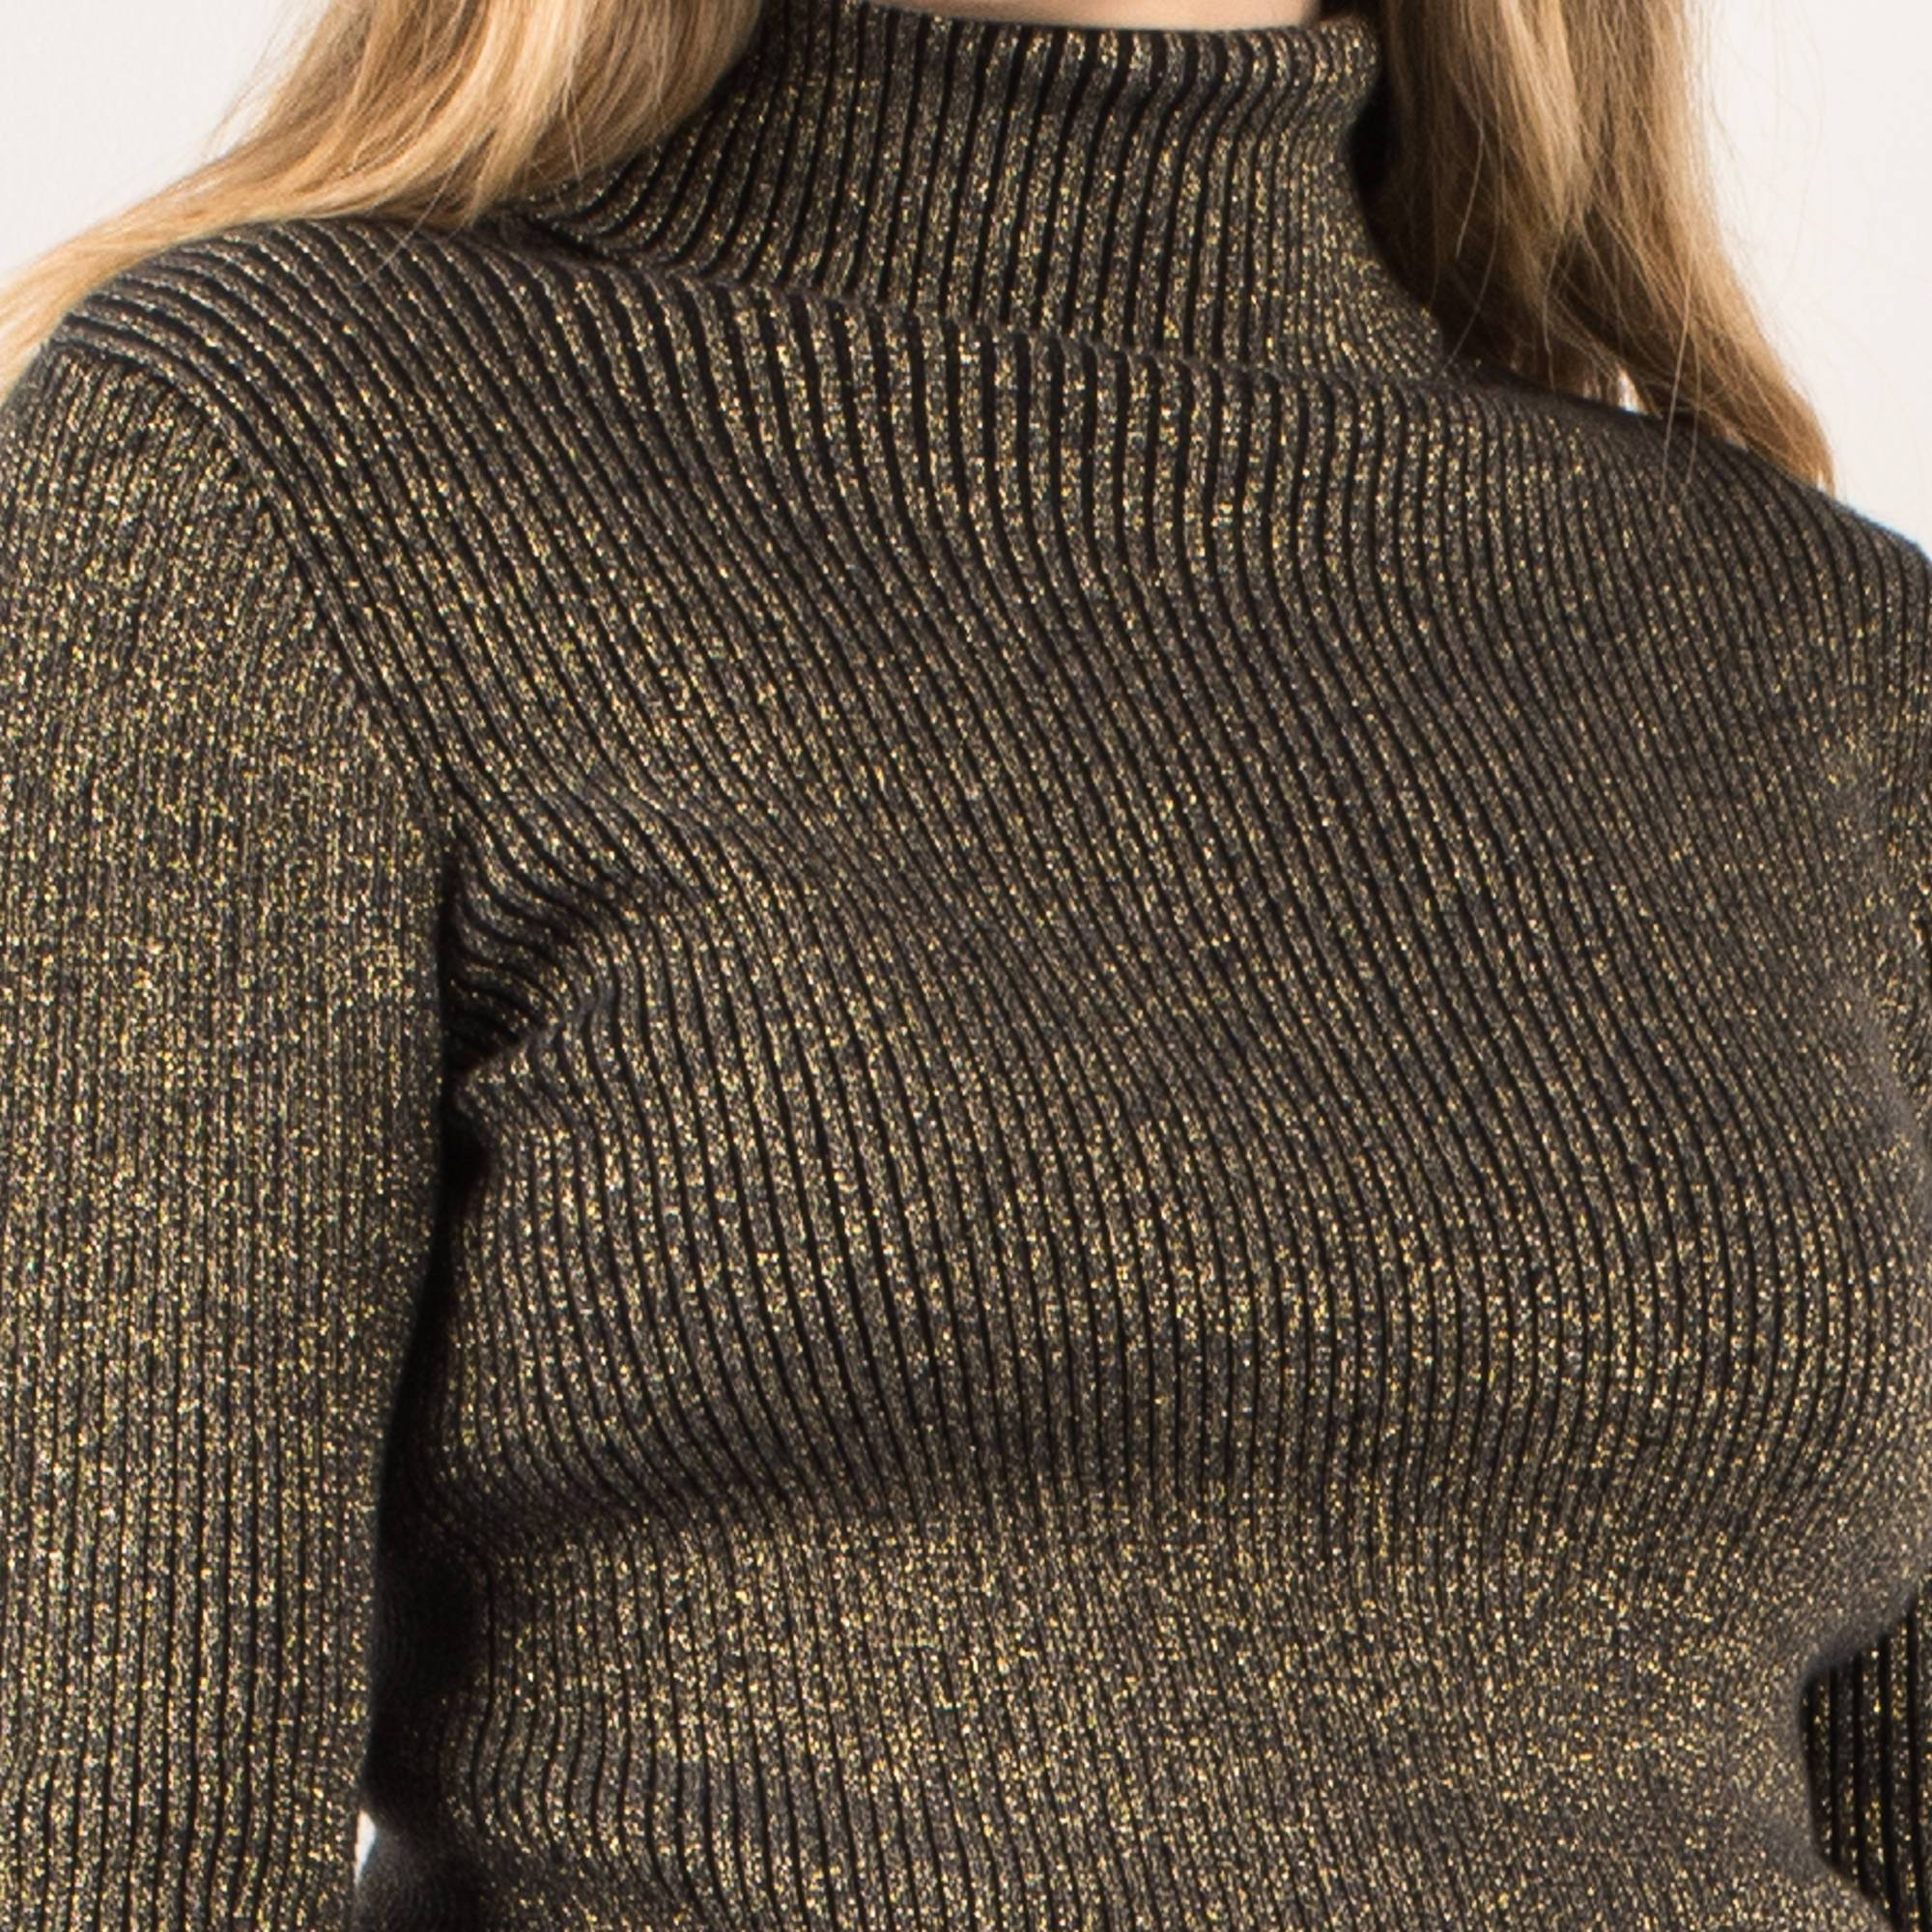 Vintage Black + Gold Glitter Ribbed Turtleneck Sweater / S - Closed Caption